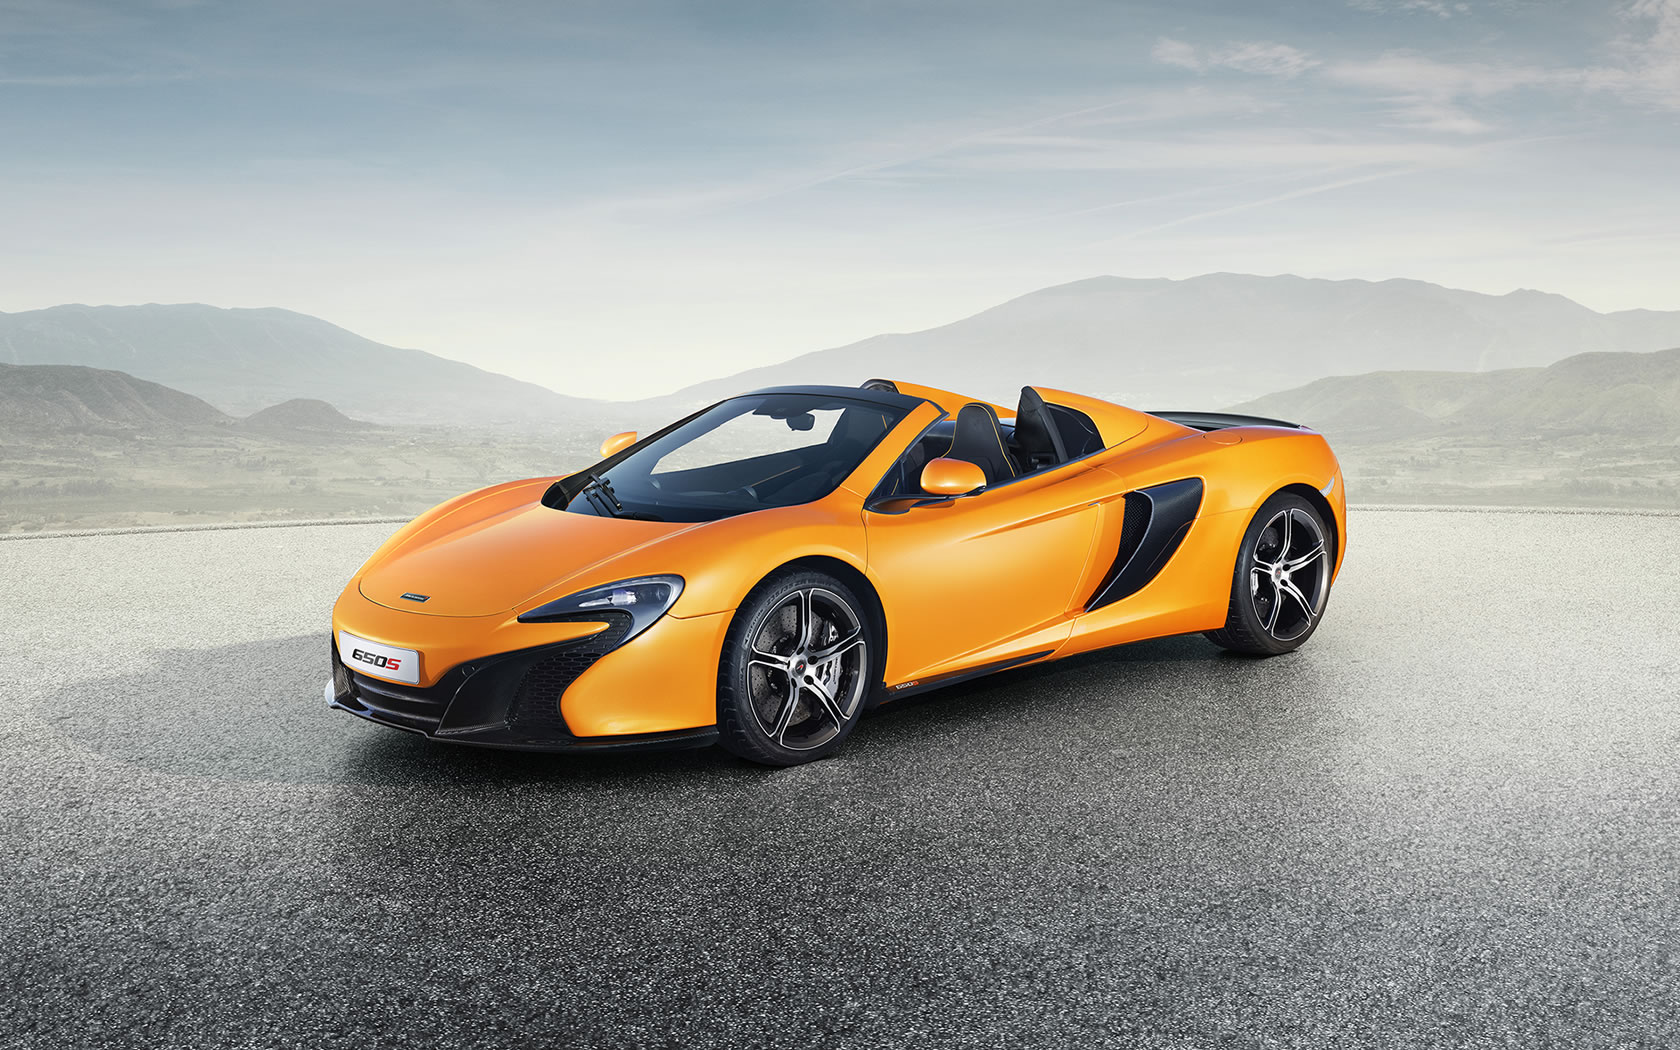 2015 McLaren 650S Spider Wallpaper - 1680 x 1050